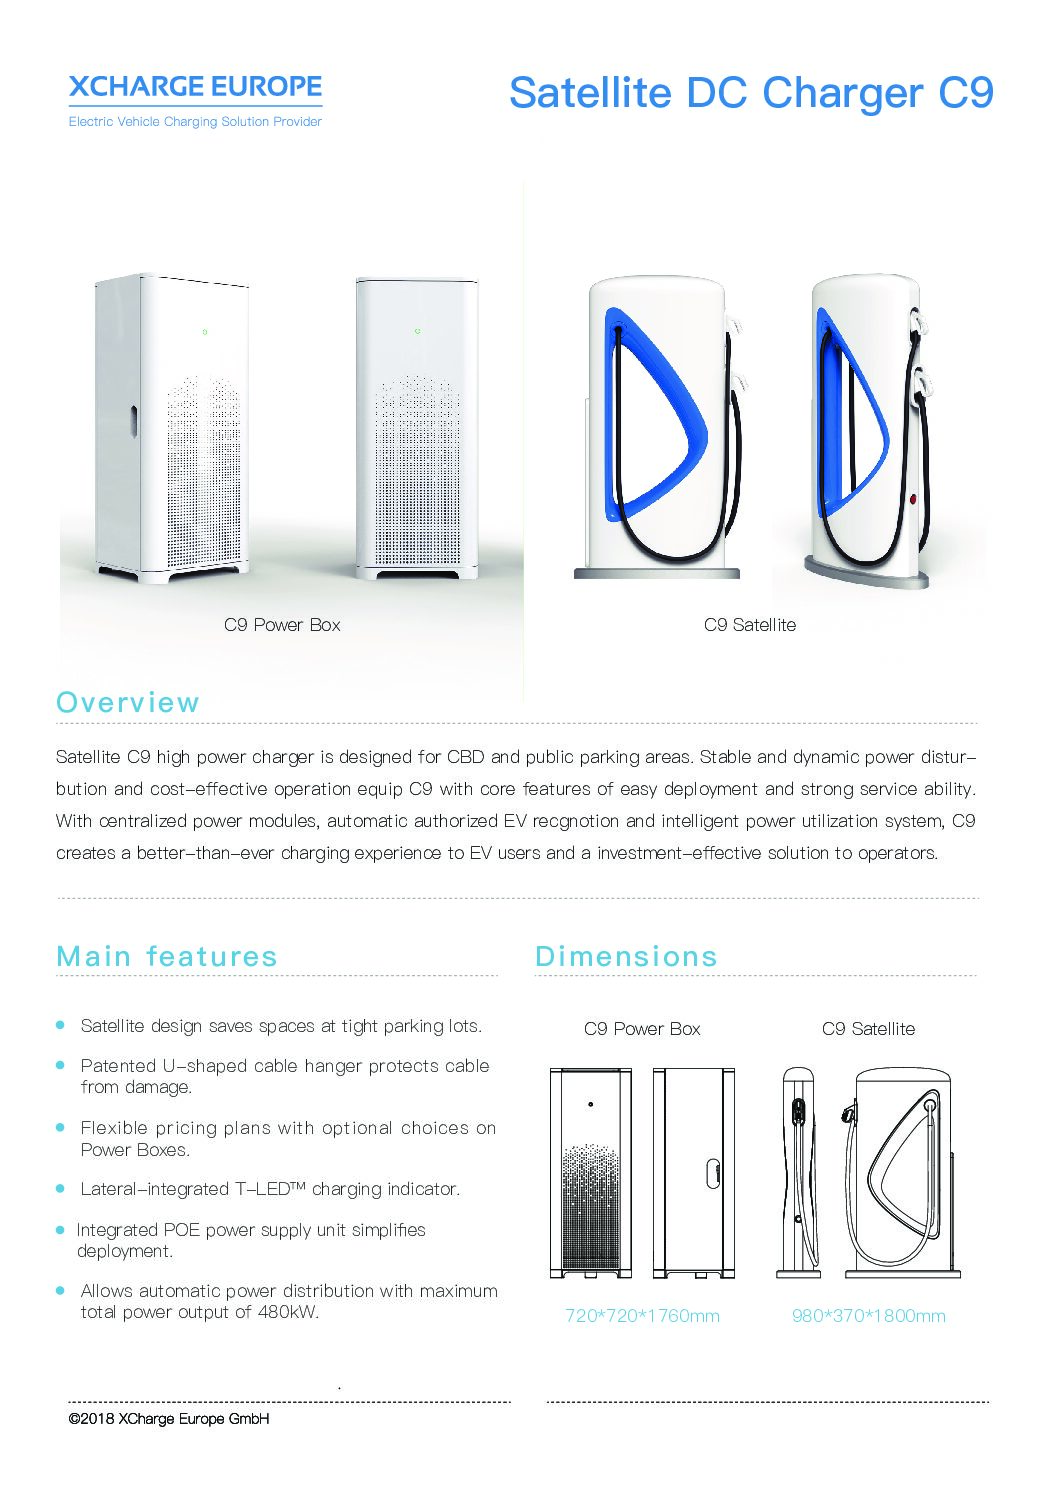 XCHARGE Satellite DC Charger C9 (China)